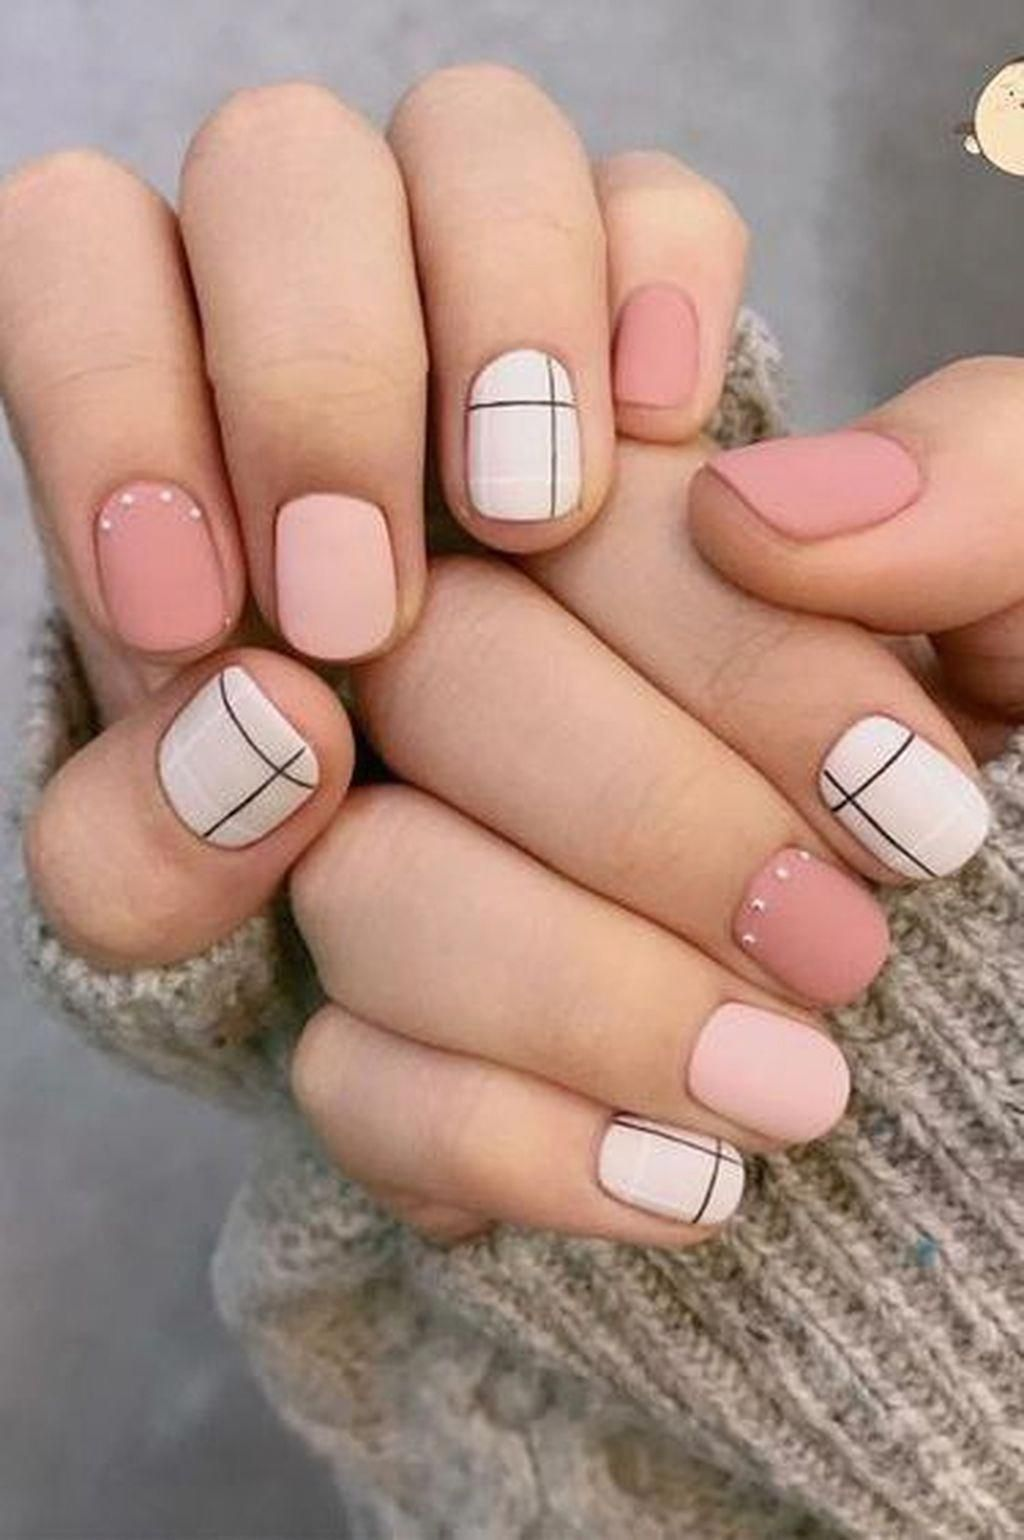 4 Methods To Make A French Manicure On Gel Nails In 2020 Cute Spring Nails Nail Designs Spring Spring Nail Art